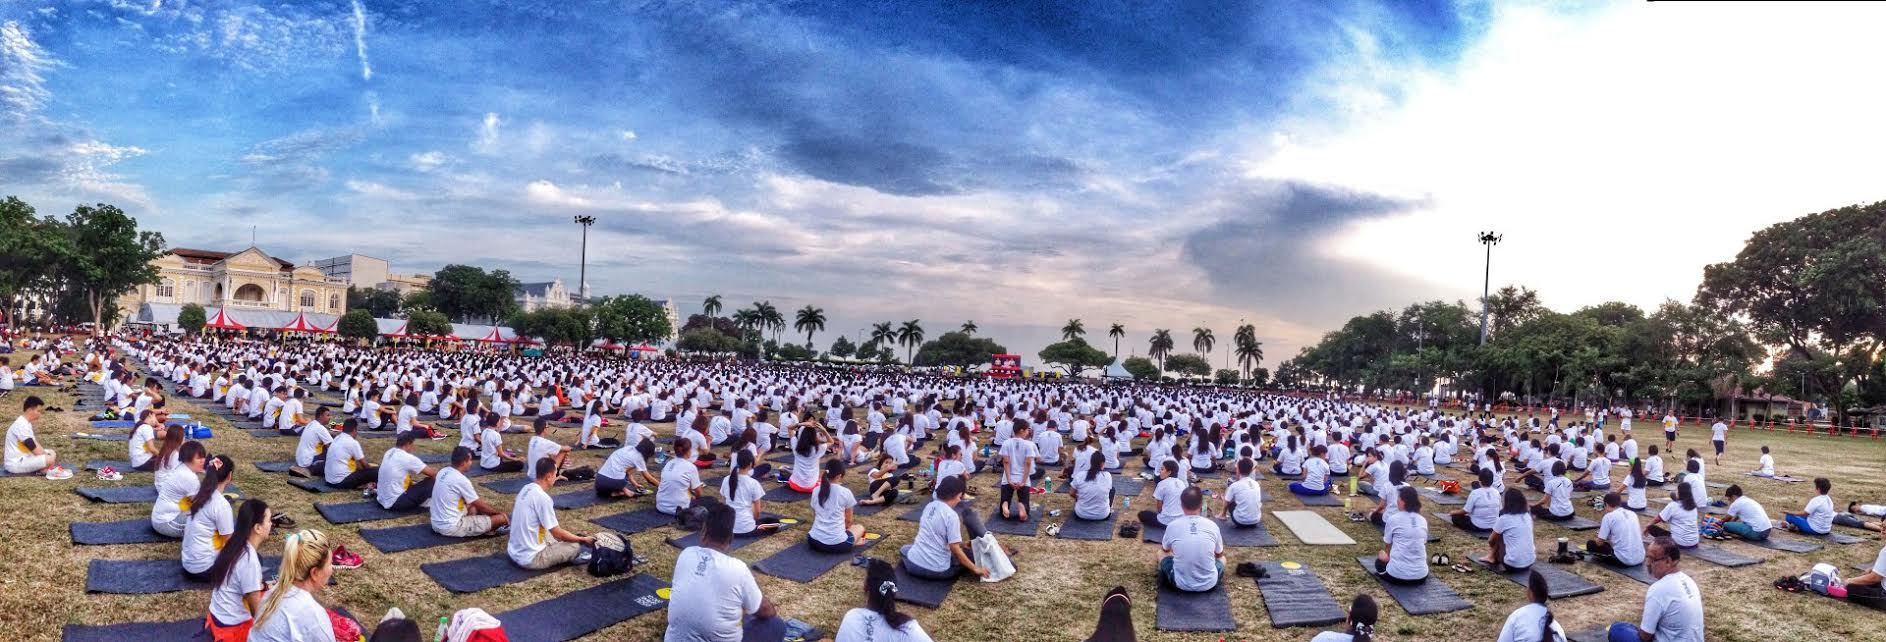 1.25 crore to participate in Yoga Day events across Gujarat, world record to be attempted